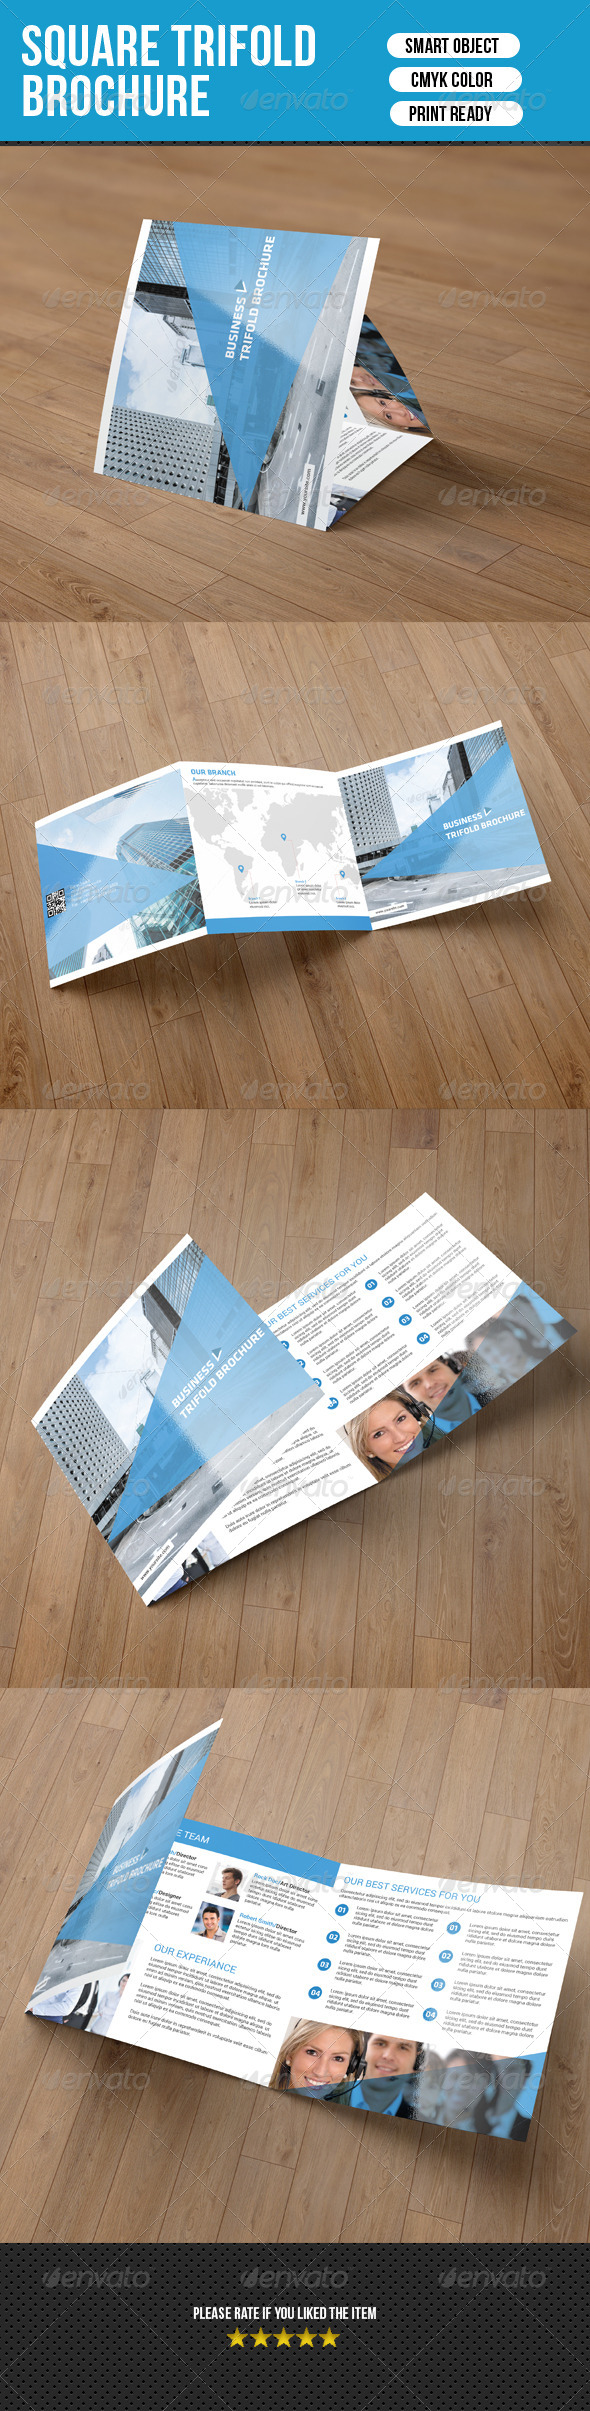 GraphicRiver Square Trifold Brochure-Business 7634561